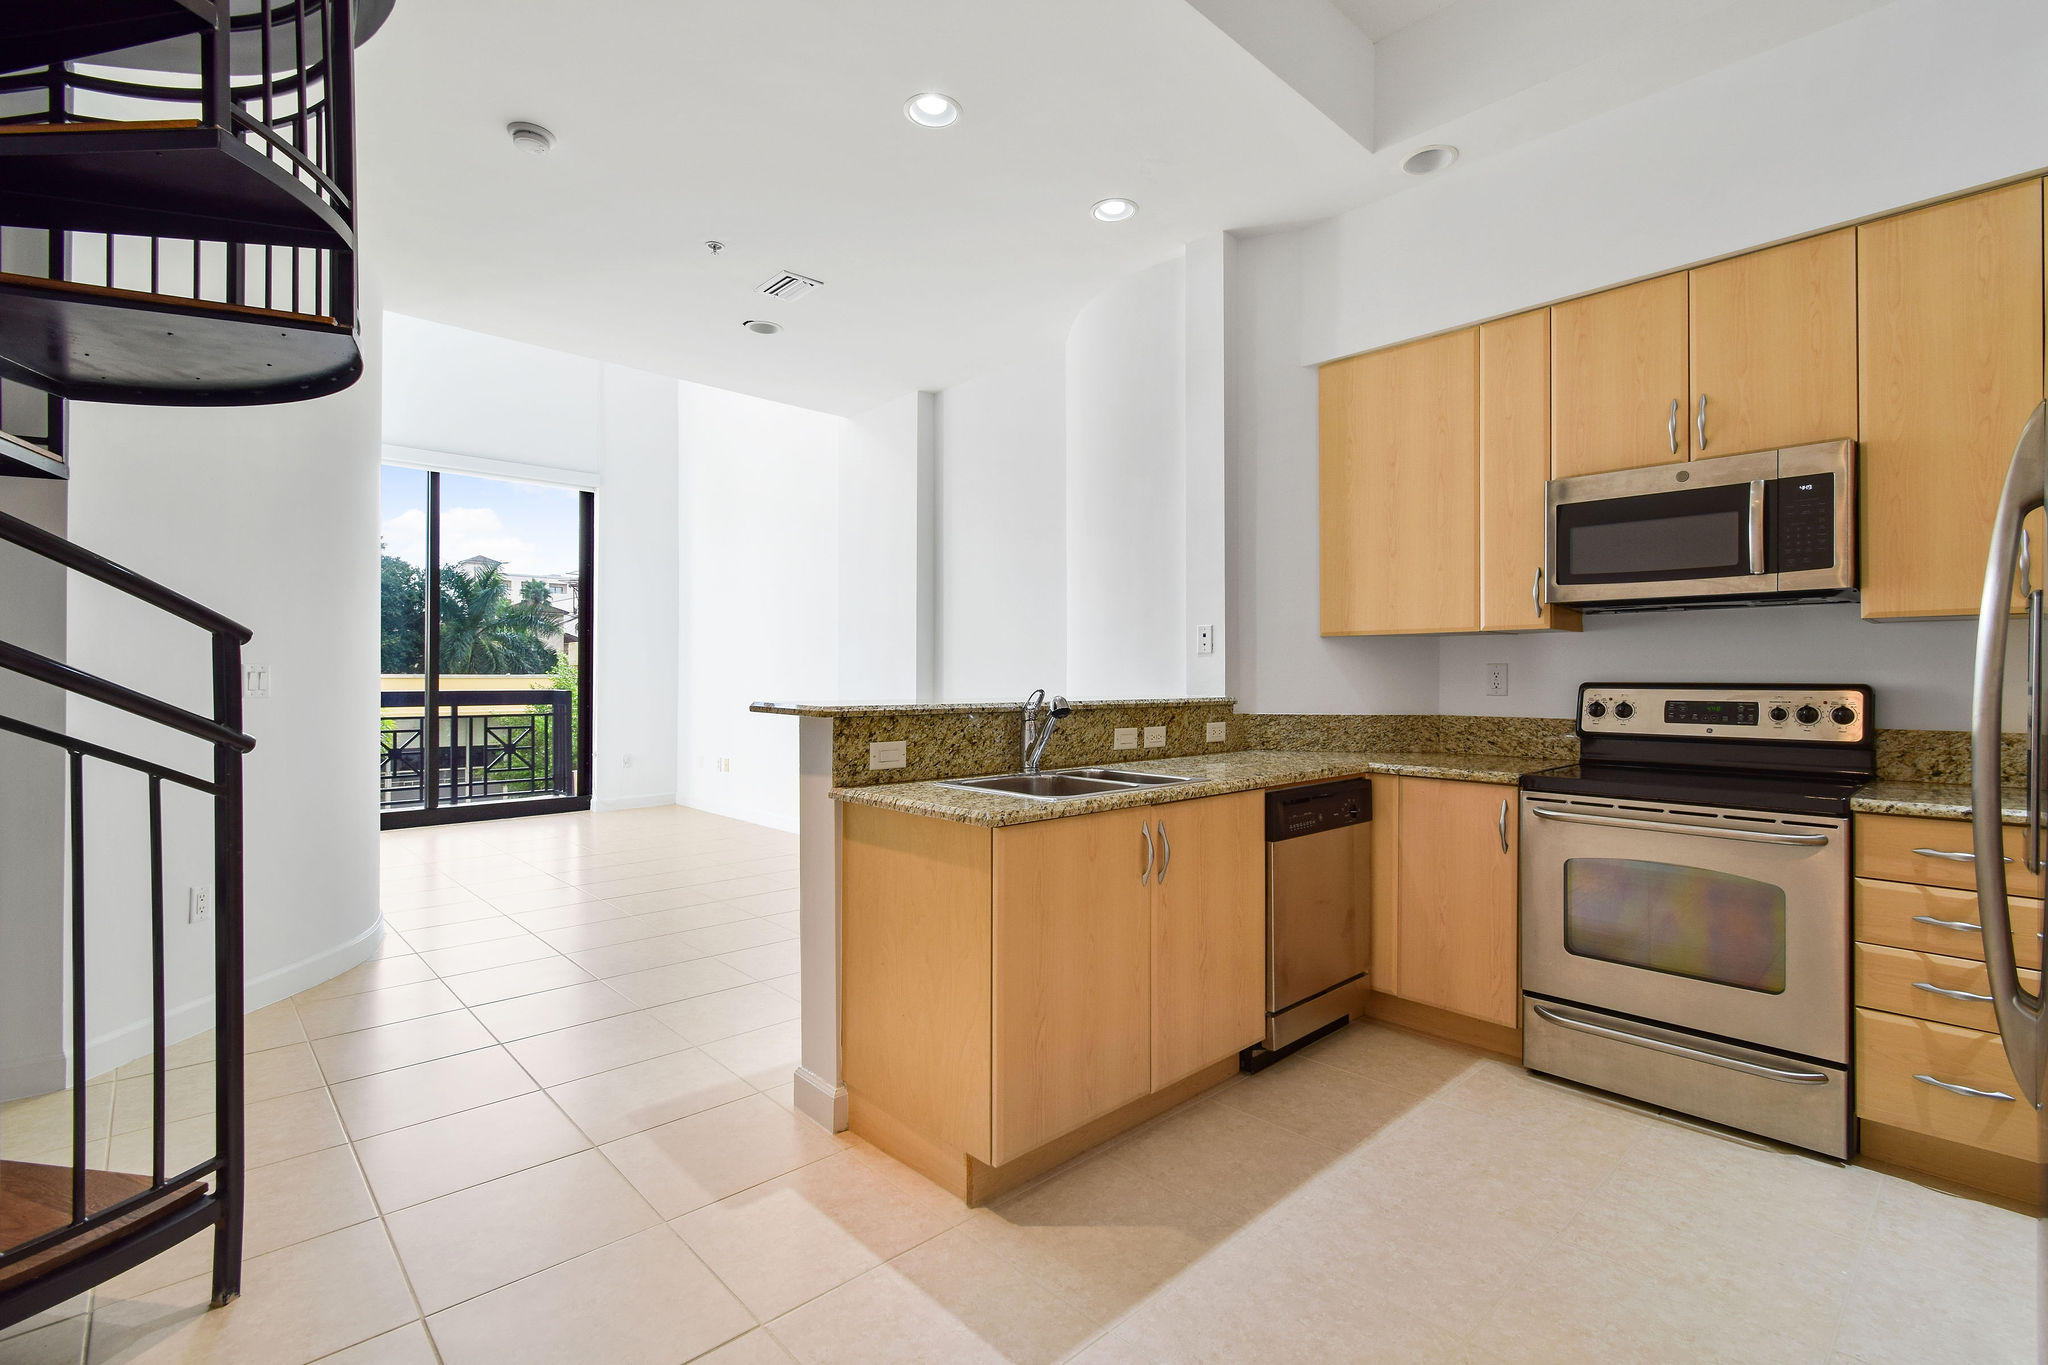 801 S Olive Avenue, 204 - West Palm Beach, Florida